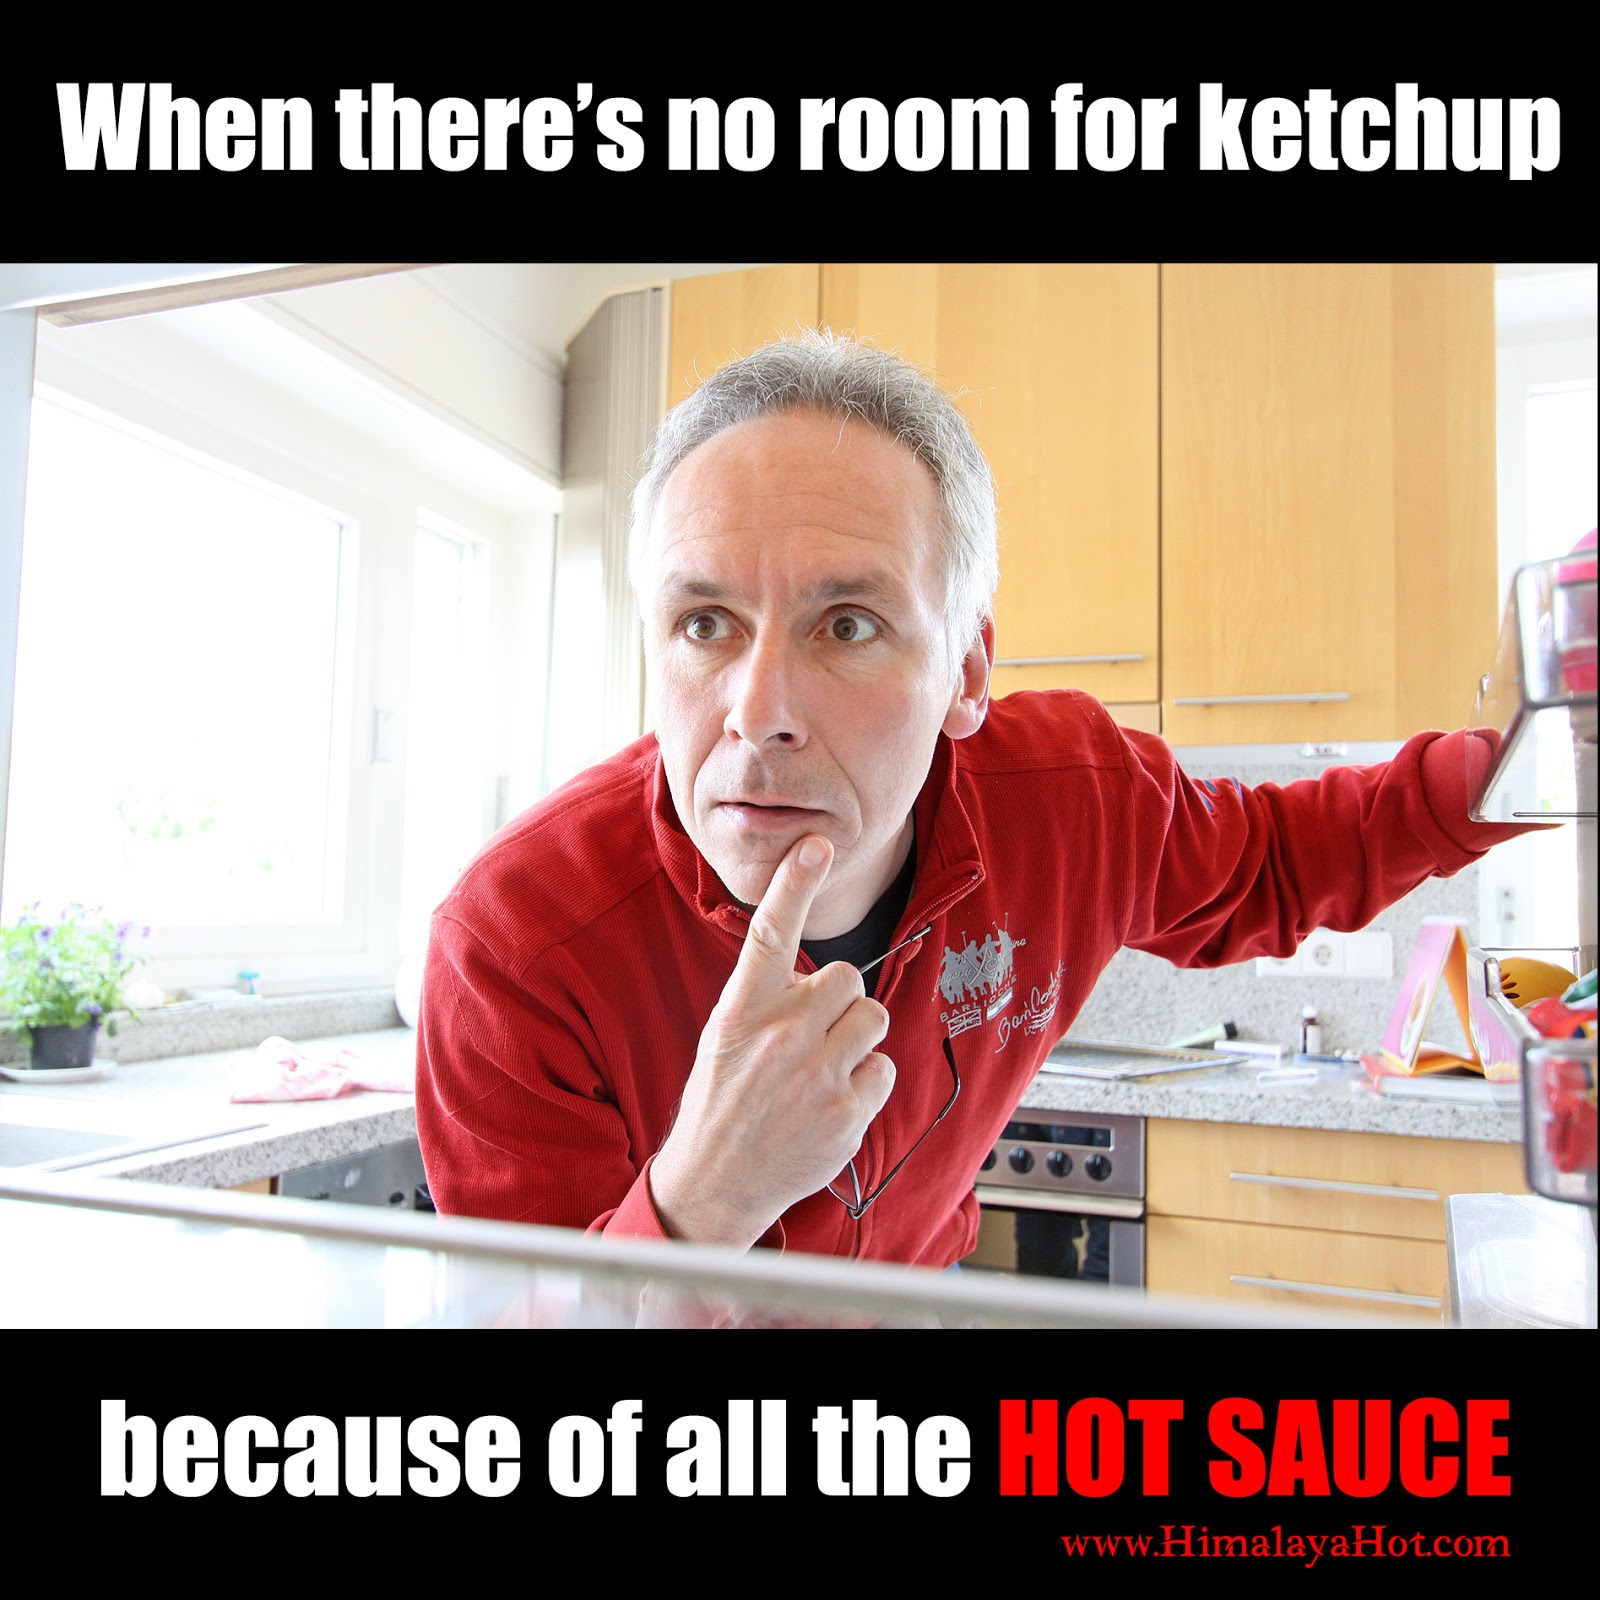 spicy memes sauce there ketchup room because face